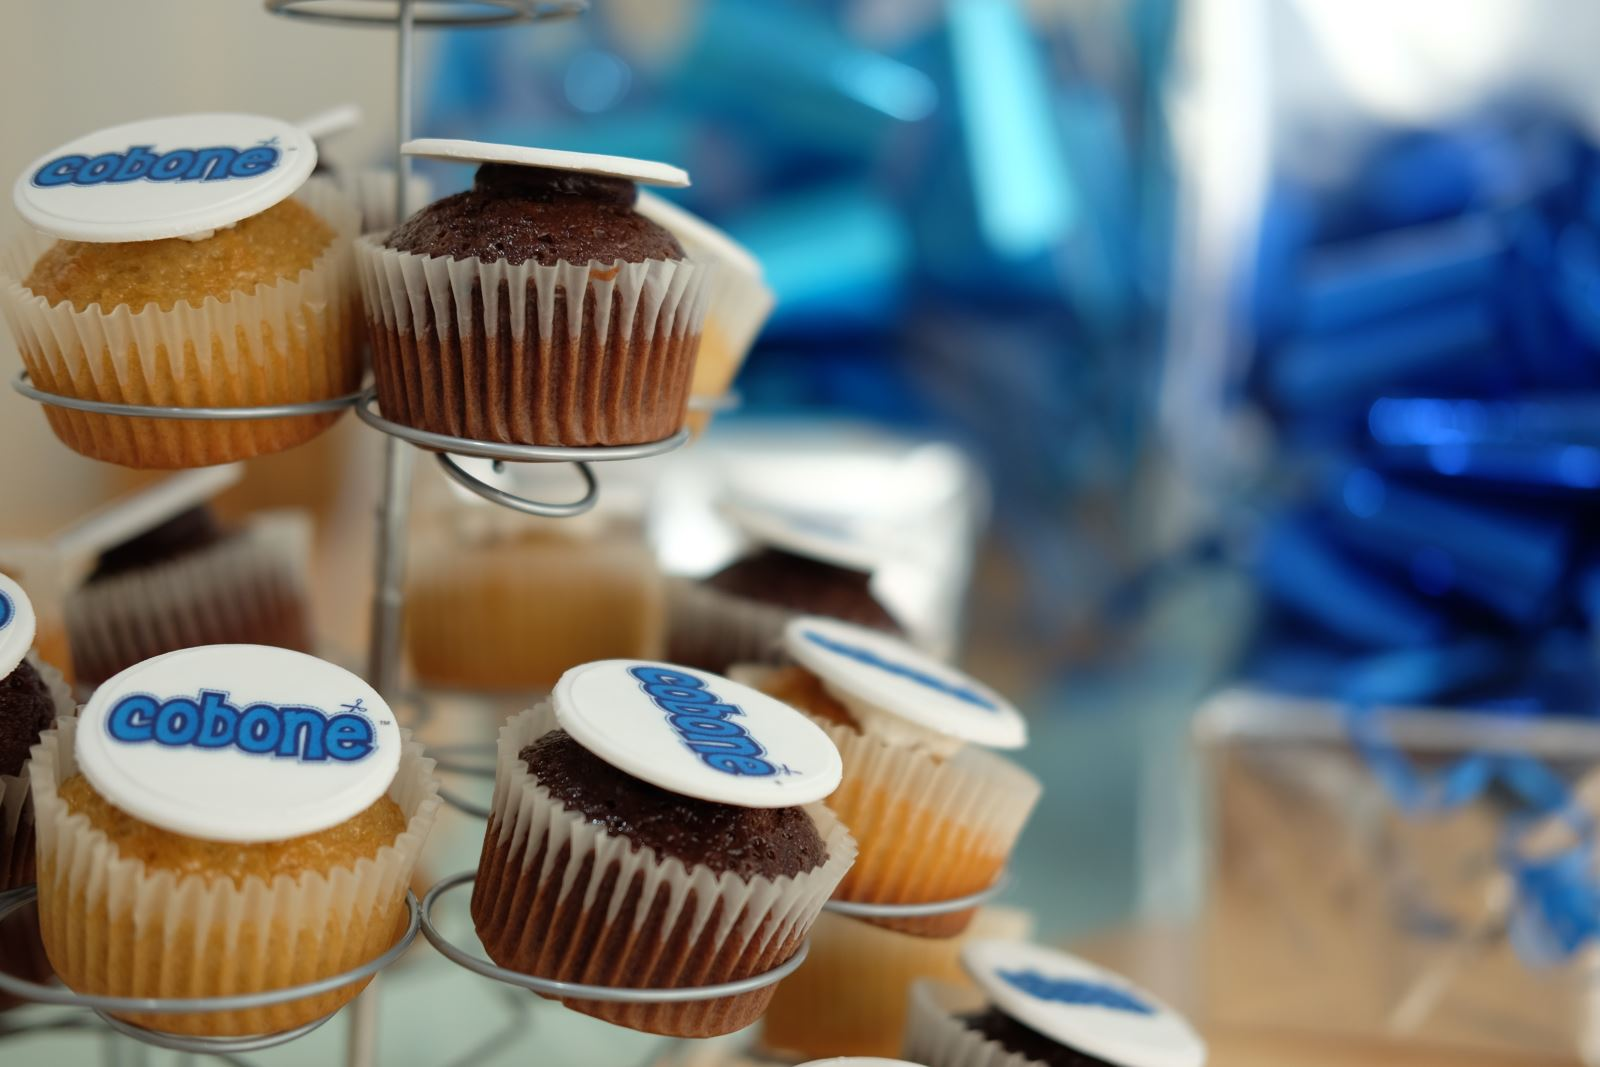 Cobone cupcakes for 2 millionth customer celebration